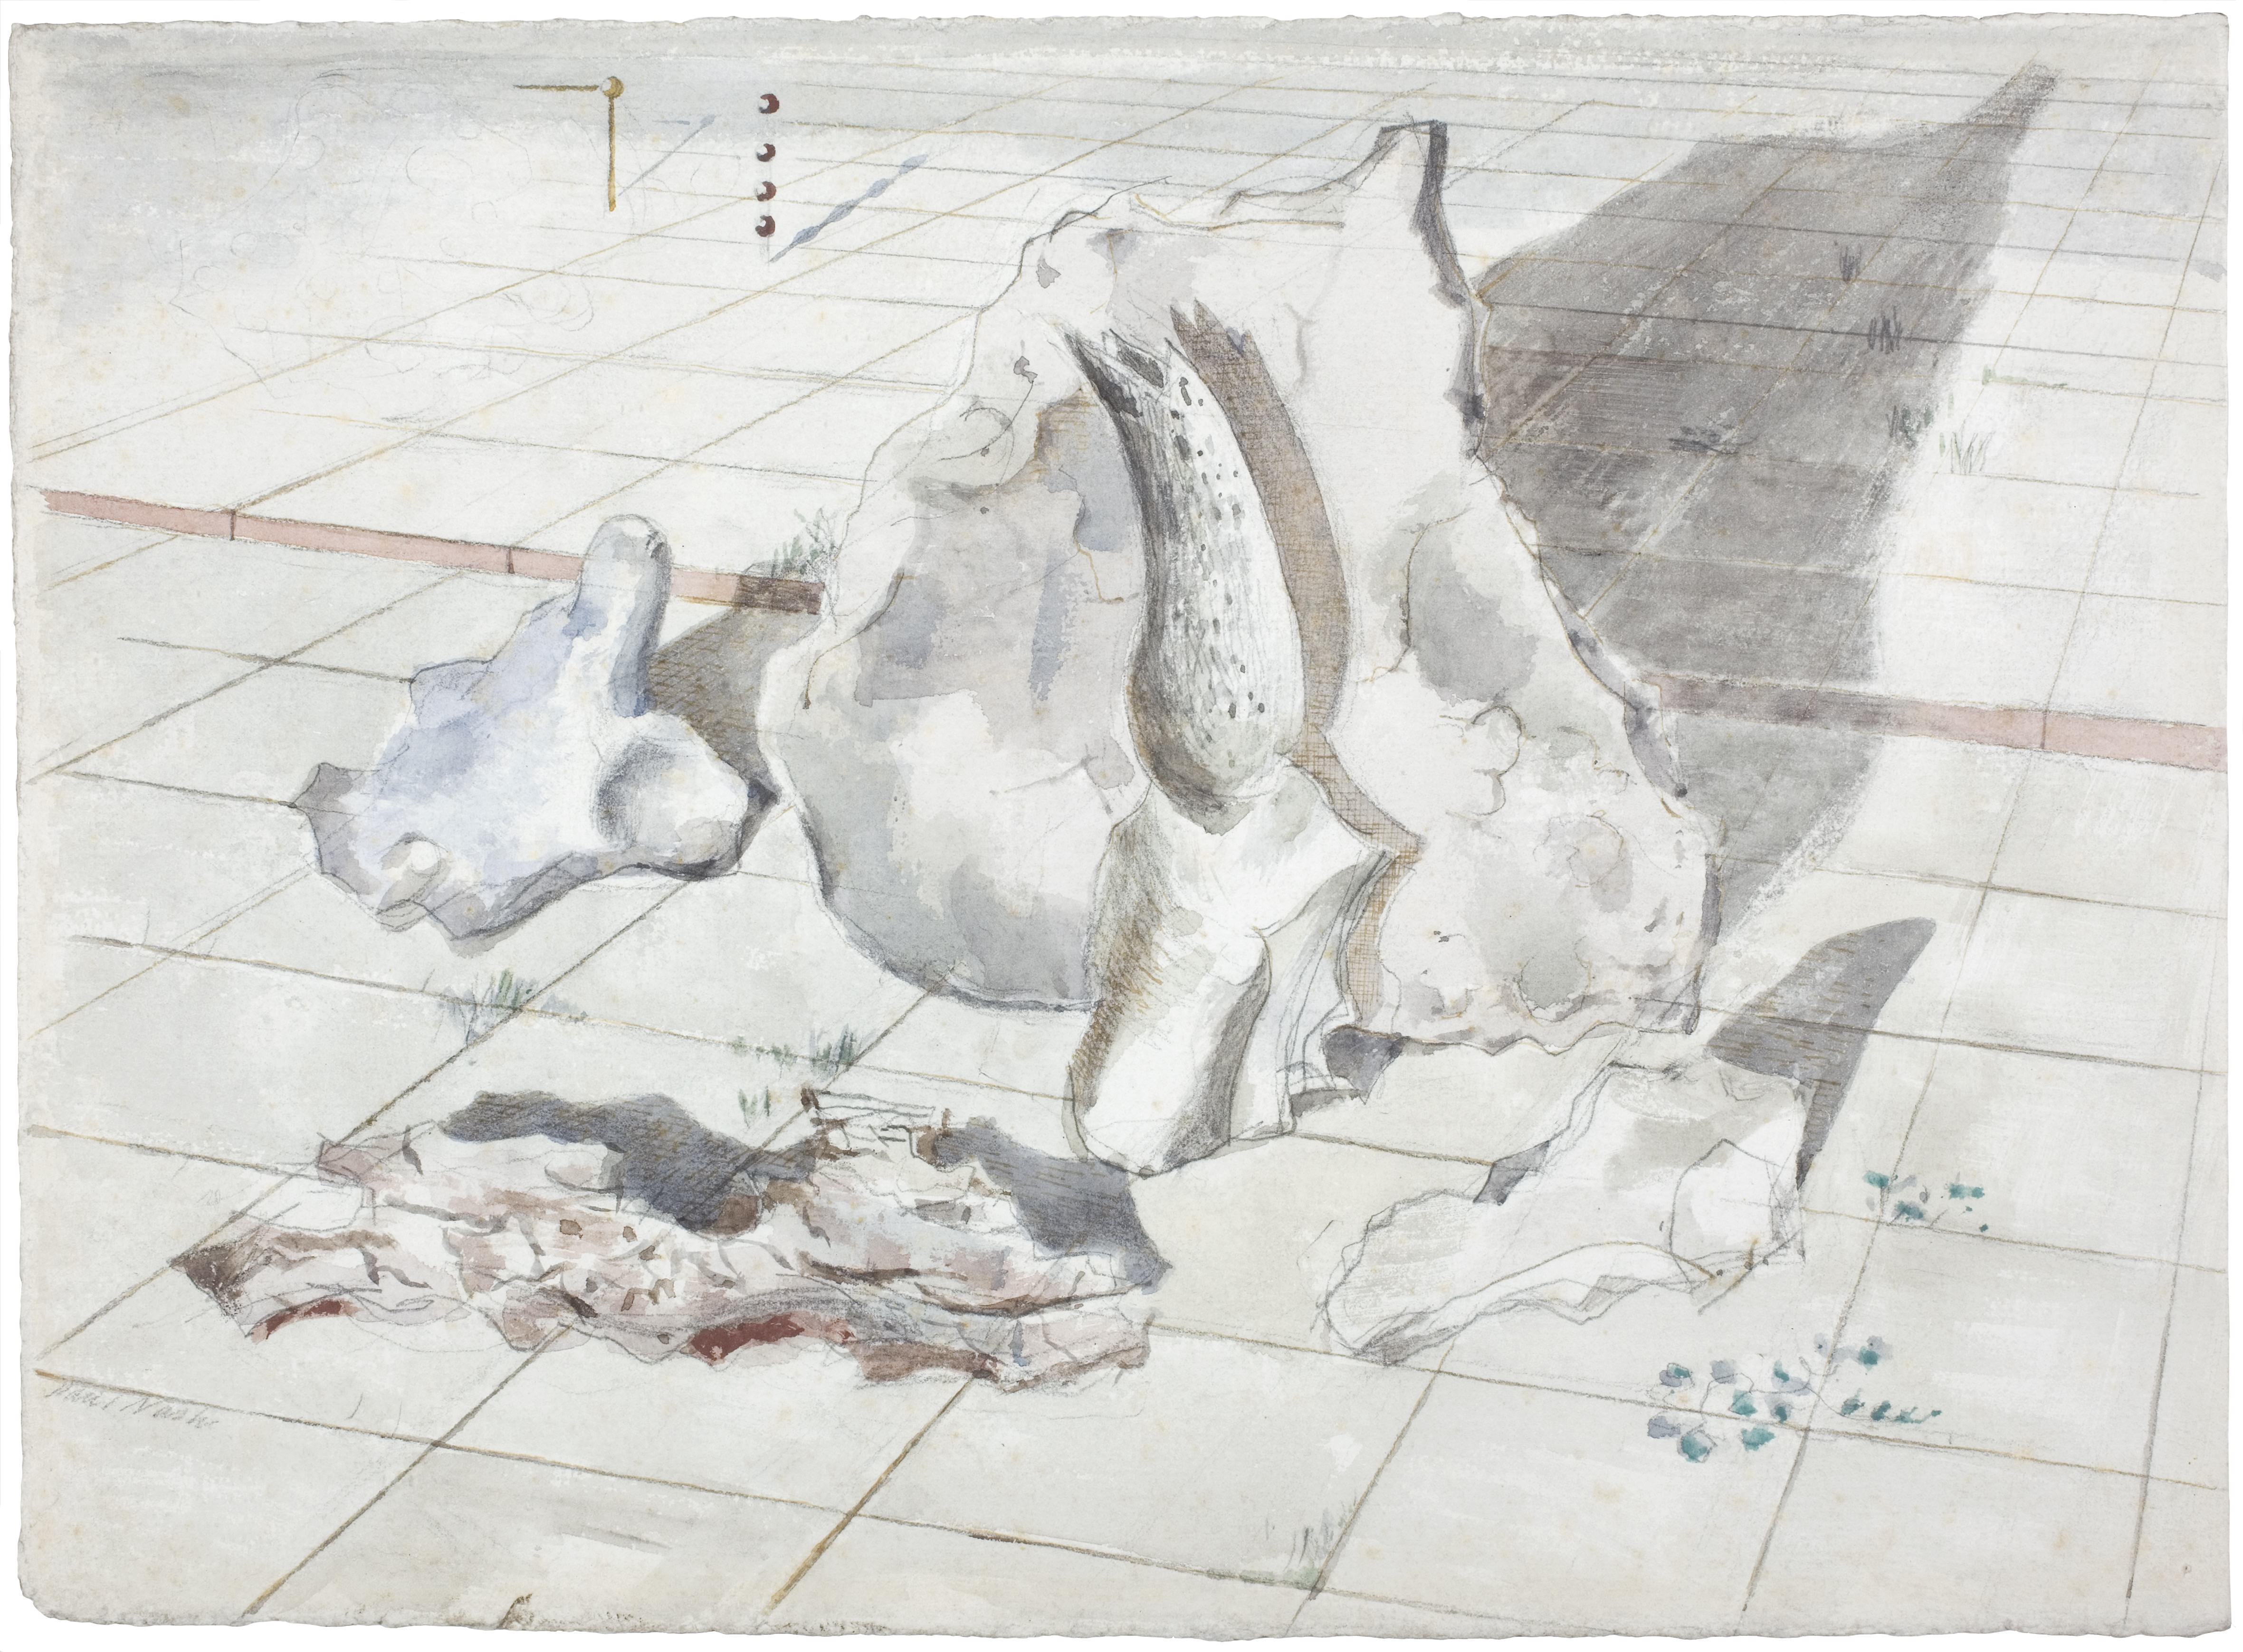 1934, watercolour and pencil on paper, 28.4 x 39.4 cm. Collection of The Daniel Katz Gallery, London.